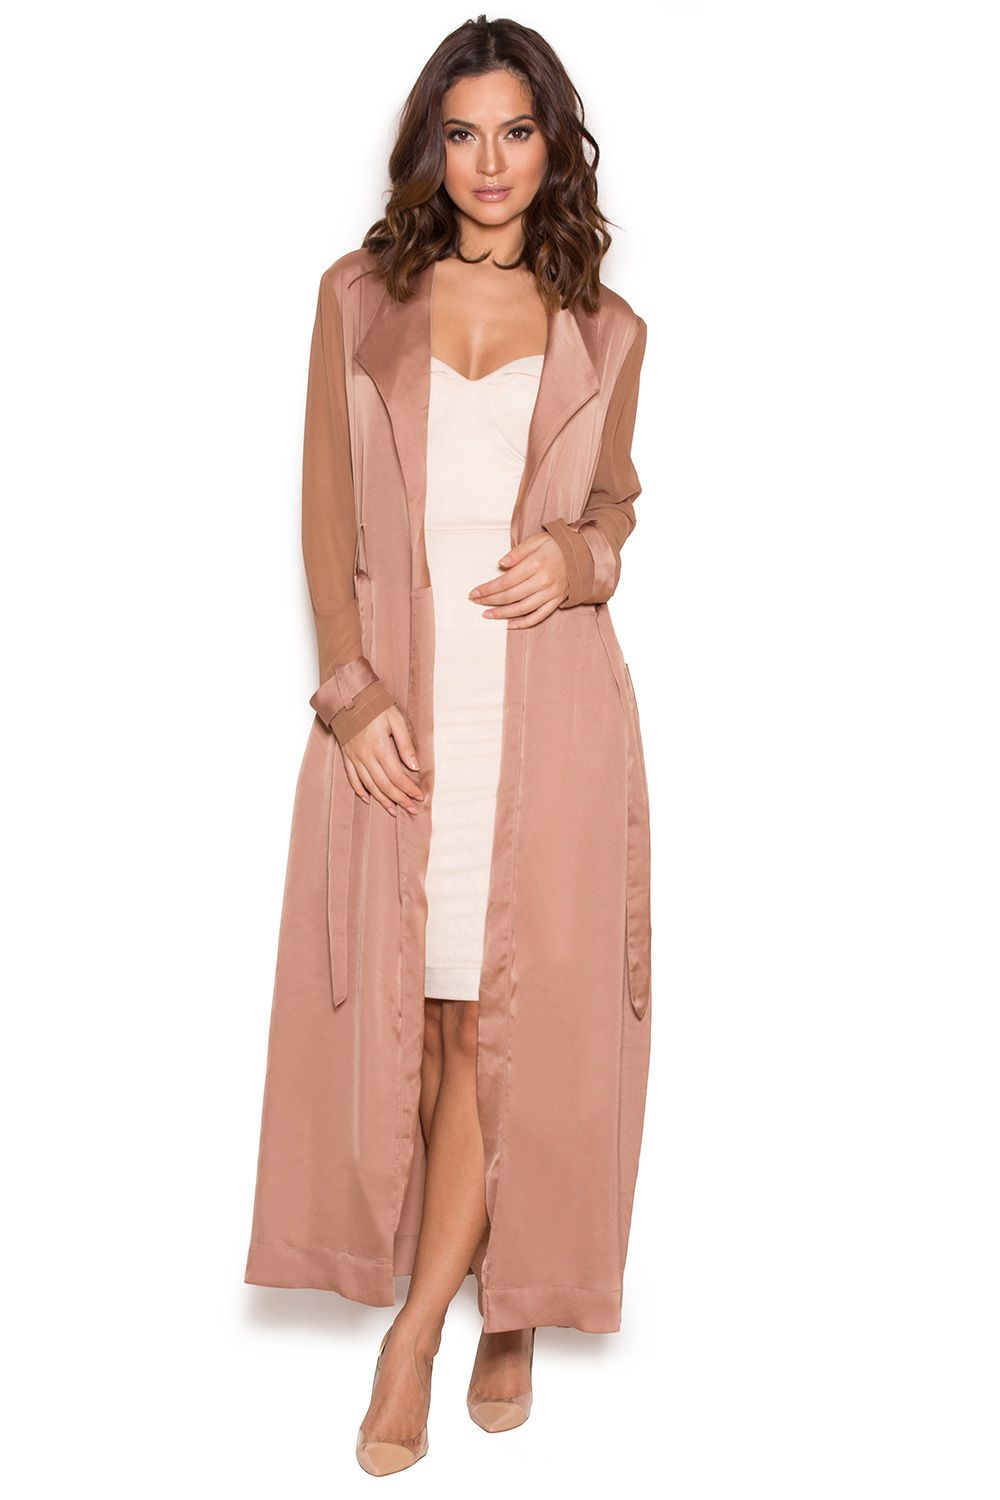 bef0d2c8cc6 Clothing   Jackets    Coryn  Rose Gold Silky Duster Coat